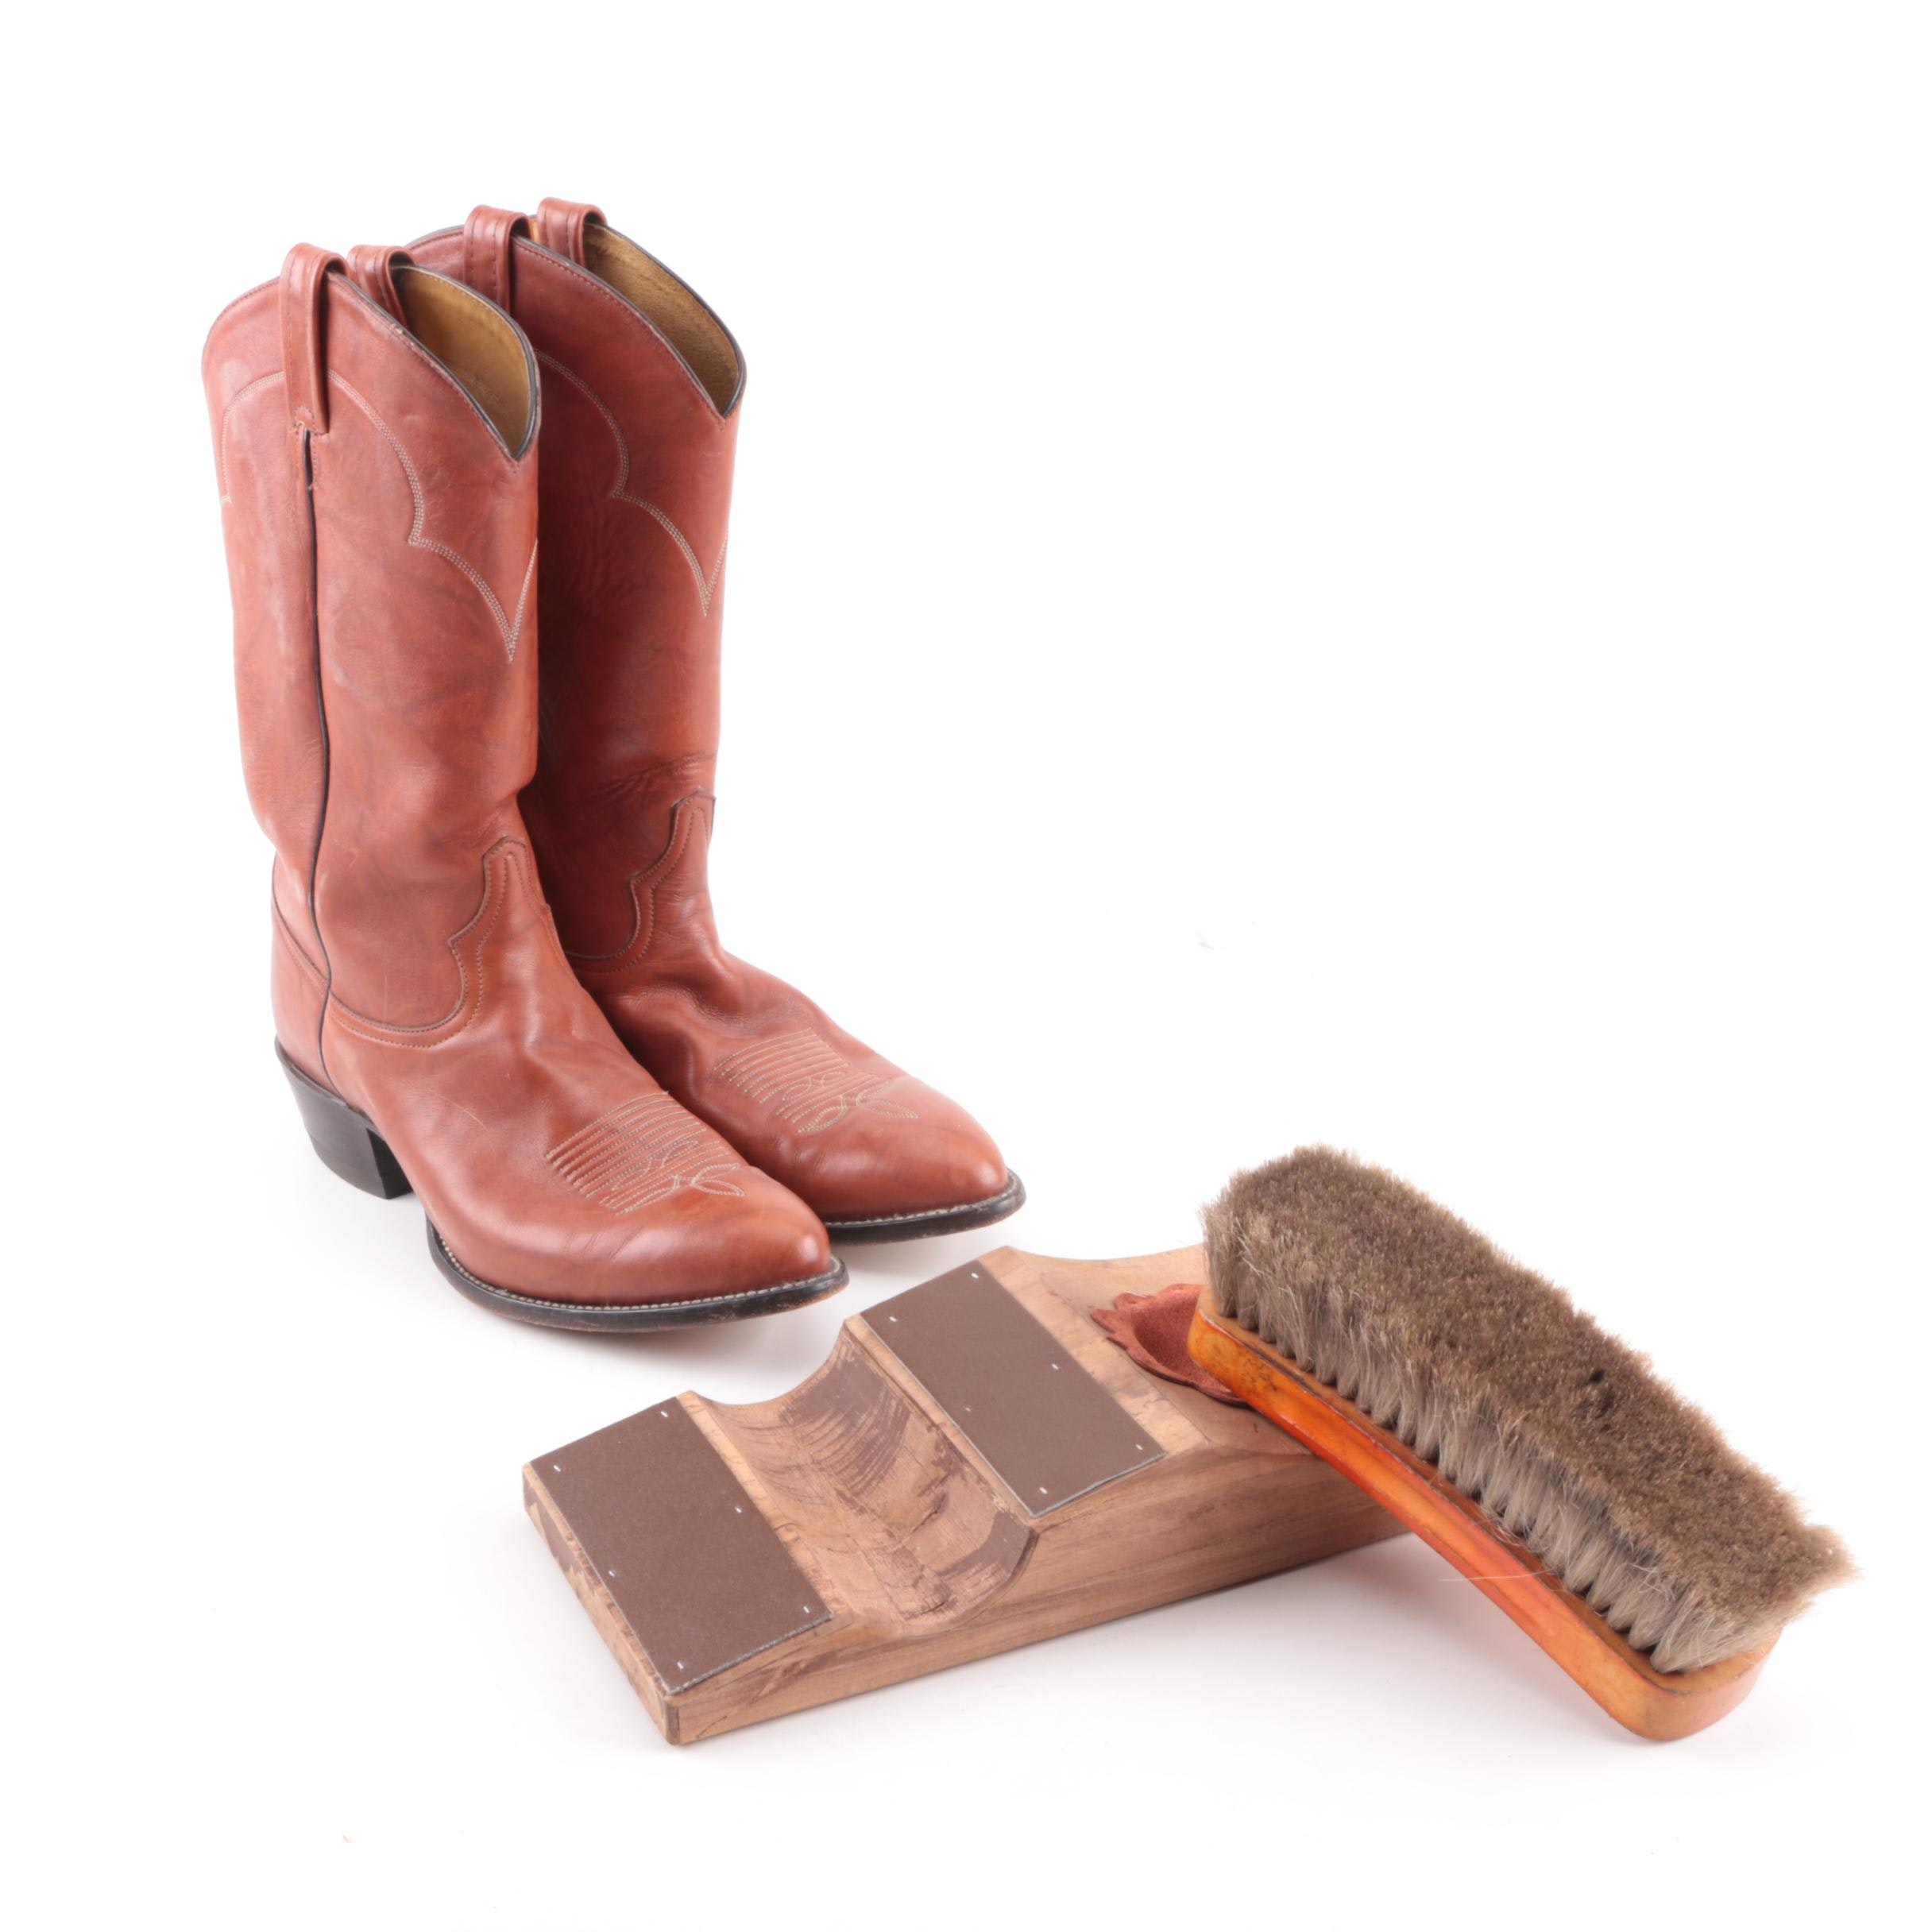 Men's Tony Lama Boots with Boot Jack and Brush